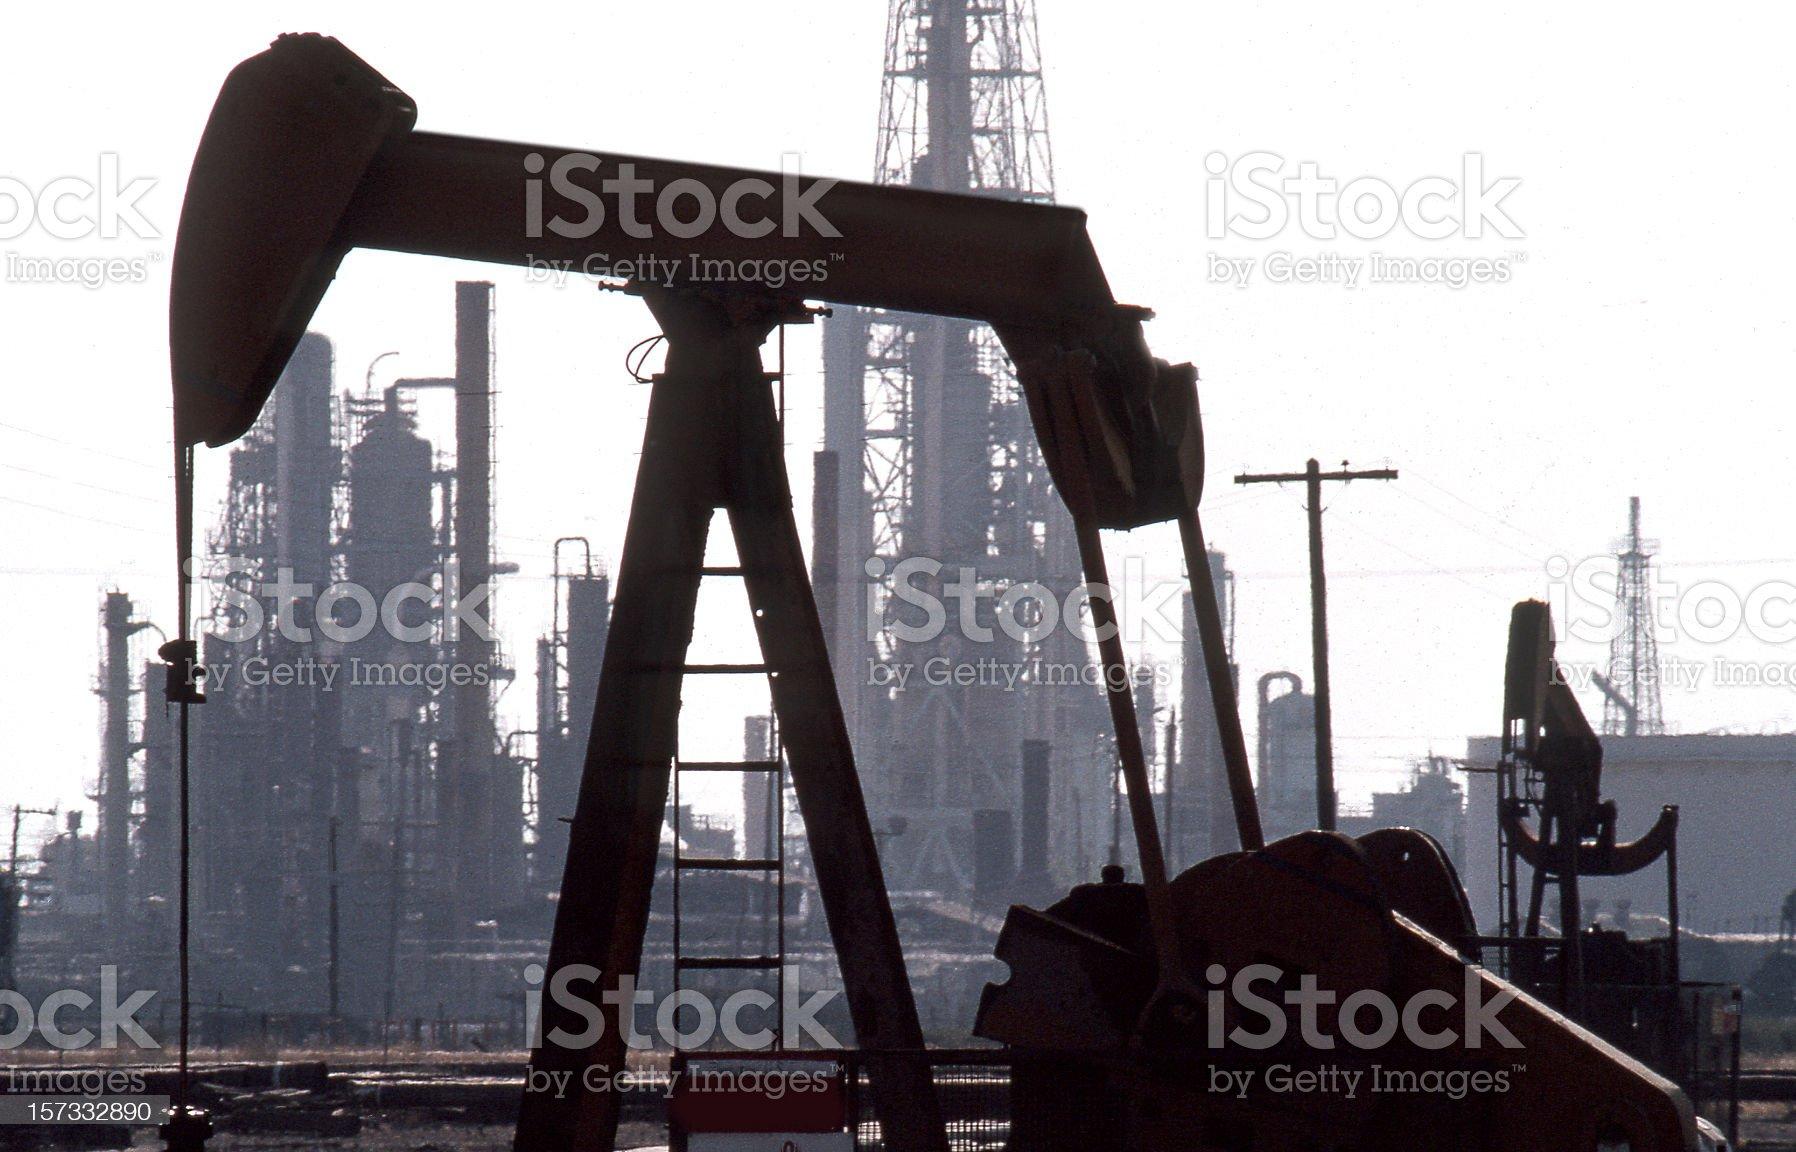 Pumpjacks in front of Old Refinery royalty-free stock photo